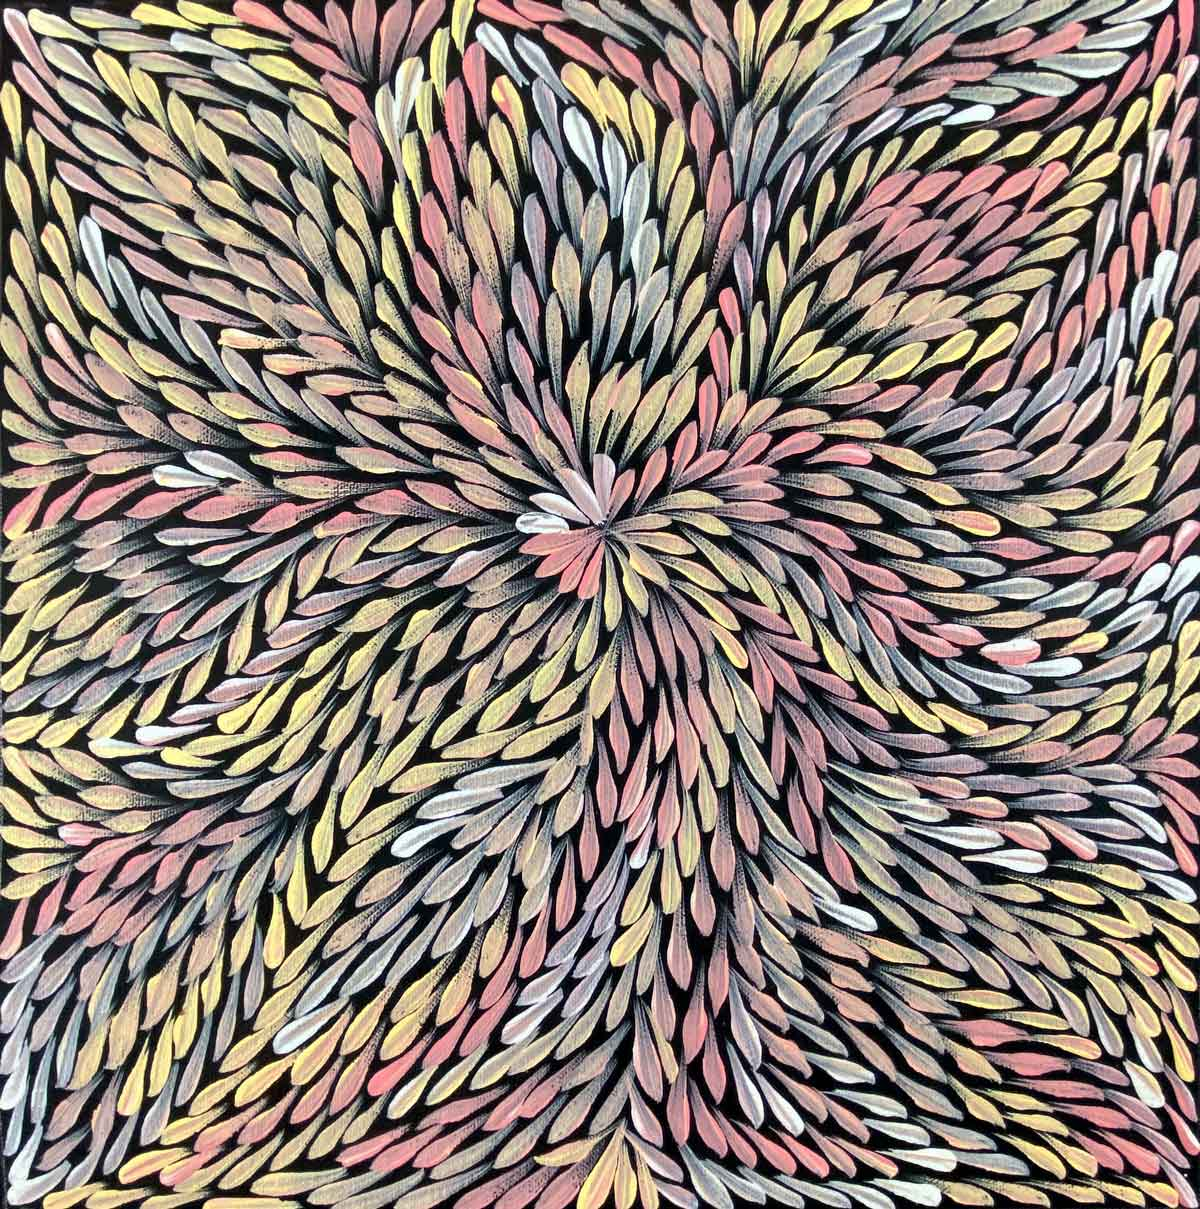 Pencil Yam Flower by Dulcie Long Pwerle. Australian Aboriginal Art.